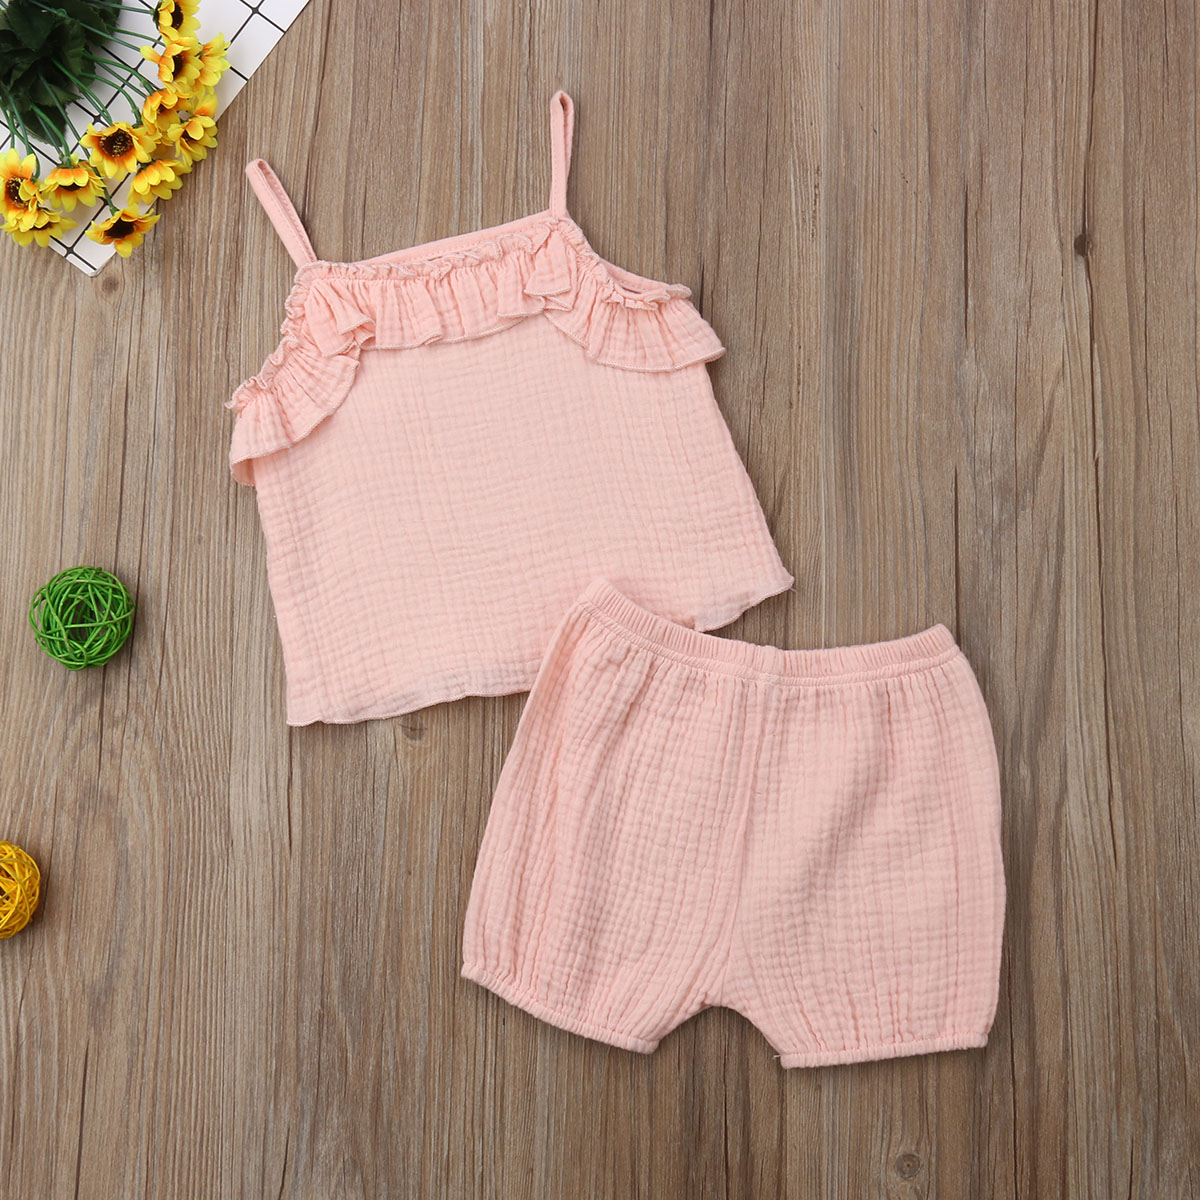 Cute Infant Toddler Baby Girl Clothes Set Solid Summer T shirt Shorts Outfits Toddler Kids Girl Clothes Sunsuit 0 3T in Clothing Sets from Mother Kids